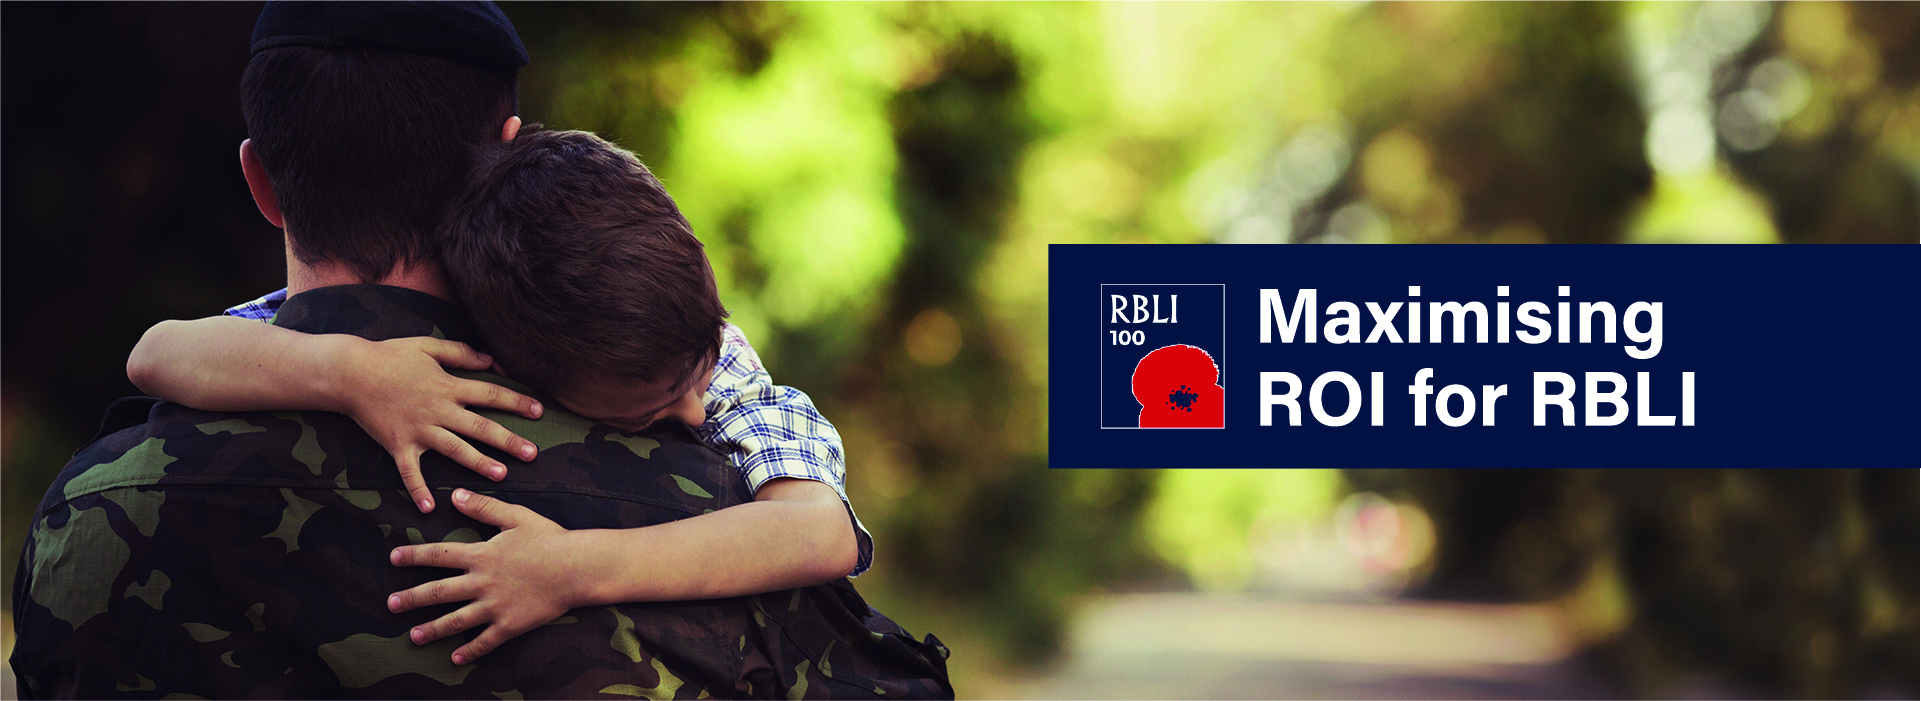 RBLI Delivering ROI